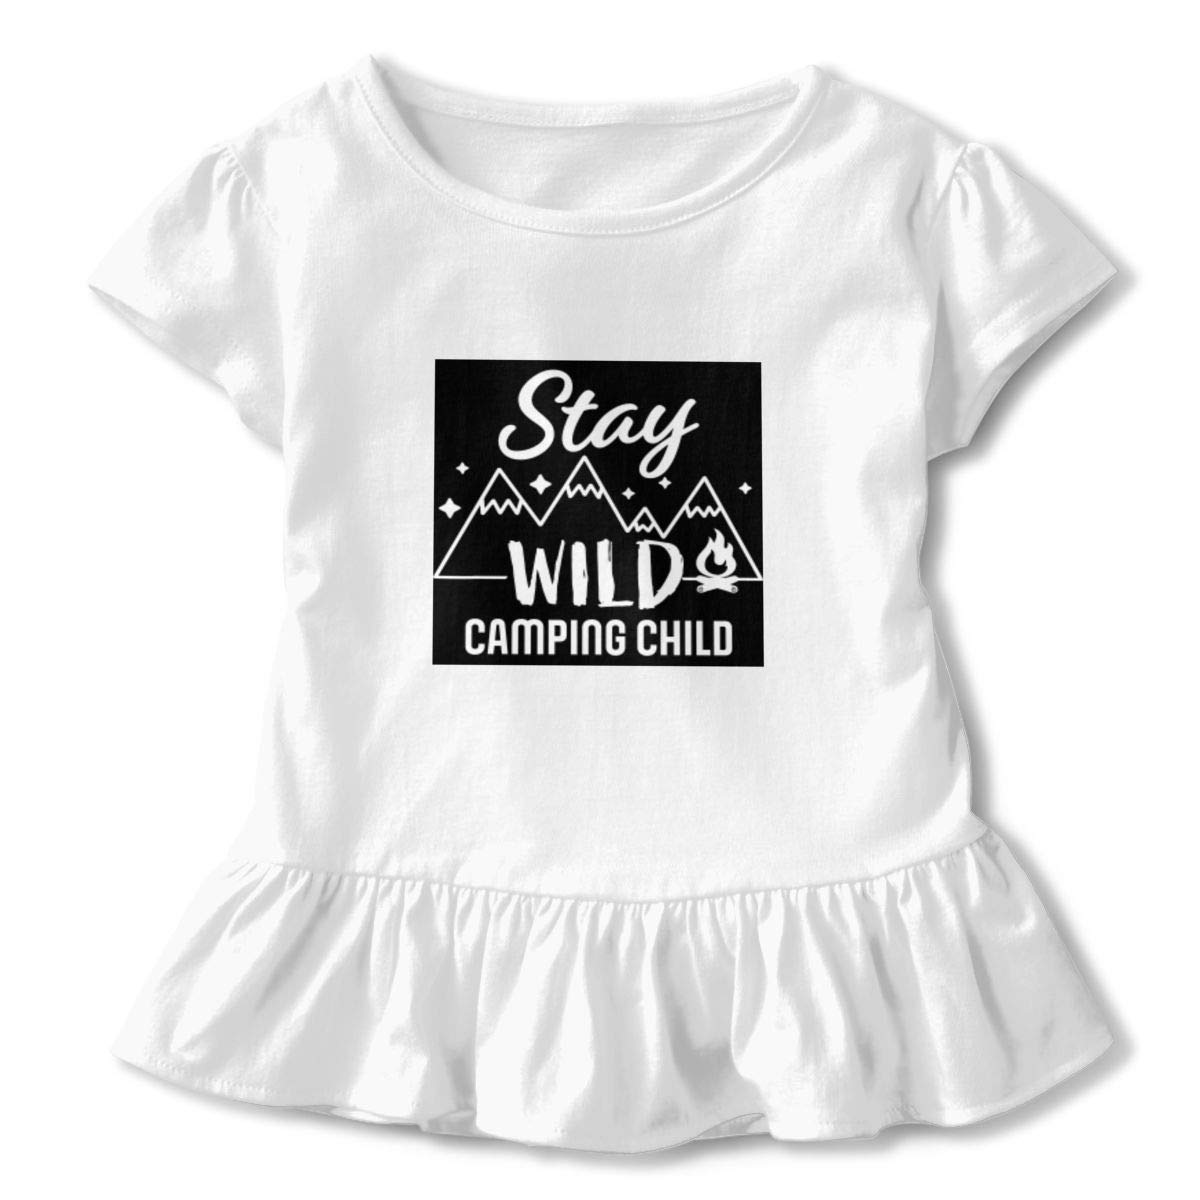 CZnuen Stay Wild Camping Child with Mountains and Fire Baby Girls Round Neck Short Sleeve Ruffle T-Shirt Top